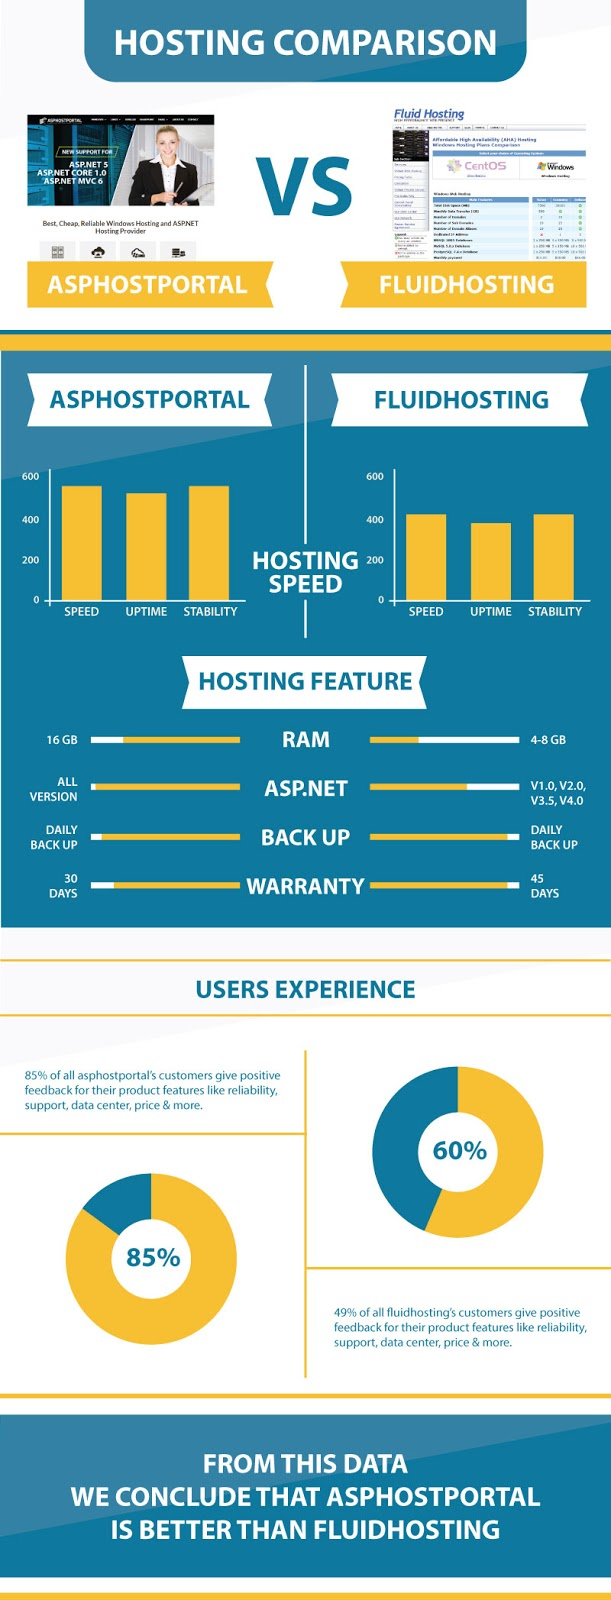 ASP.NET Core 1.0 Hosting Comparison | ASPHostPortal Vs FluidHosting | Explained With Infographic